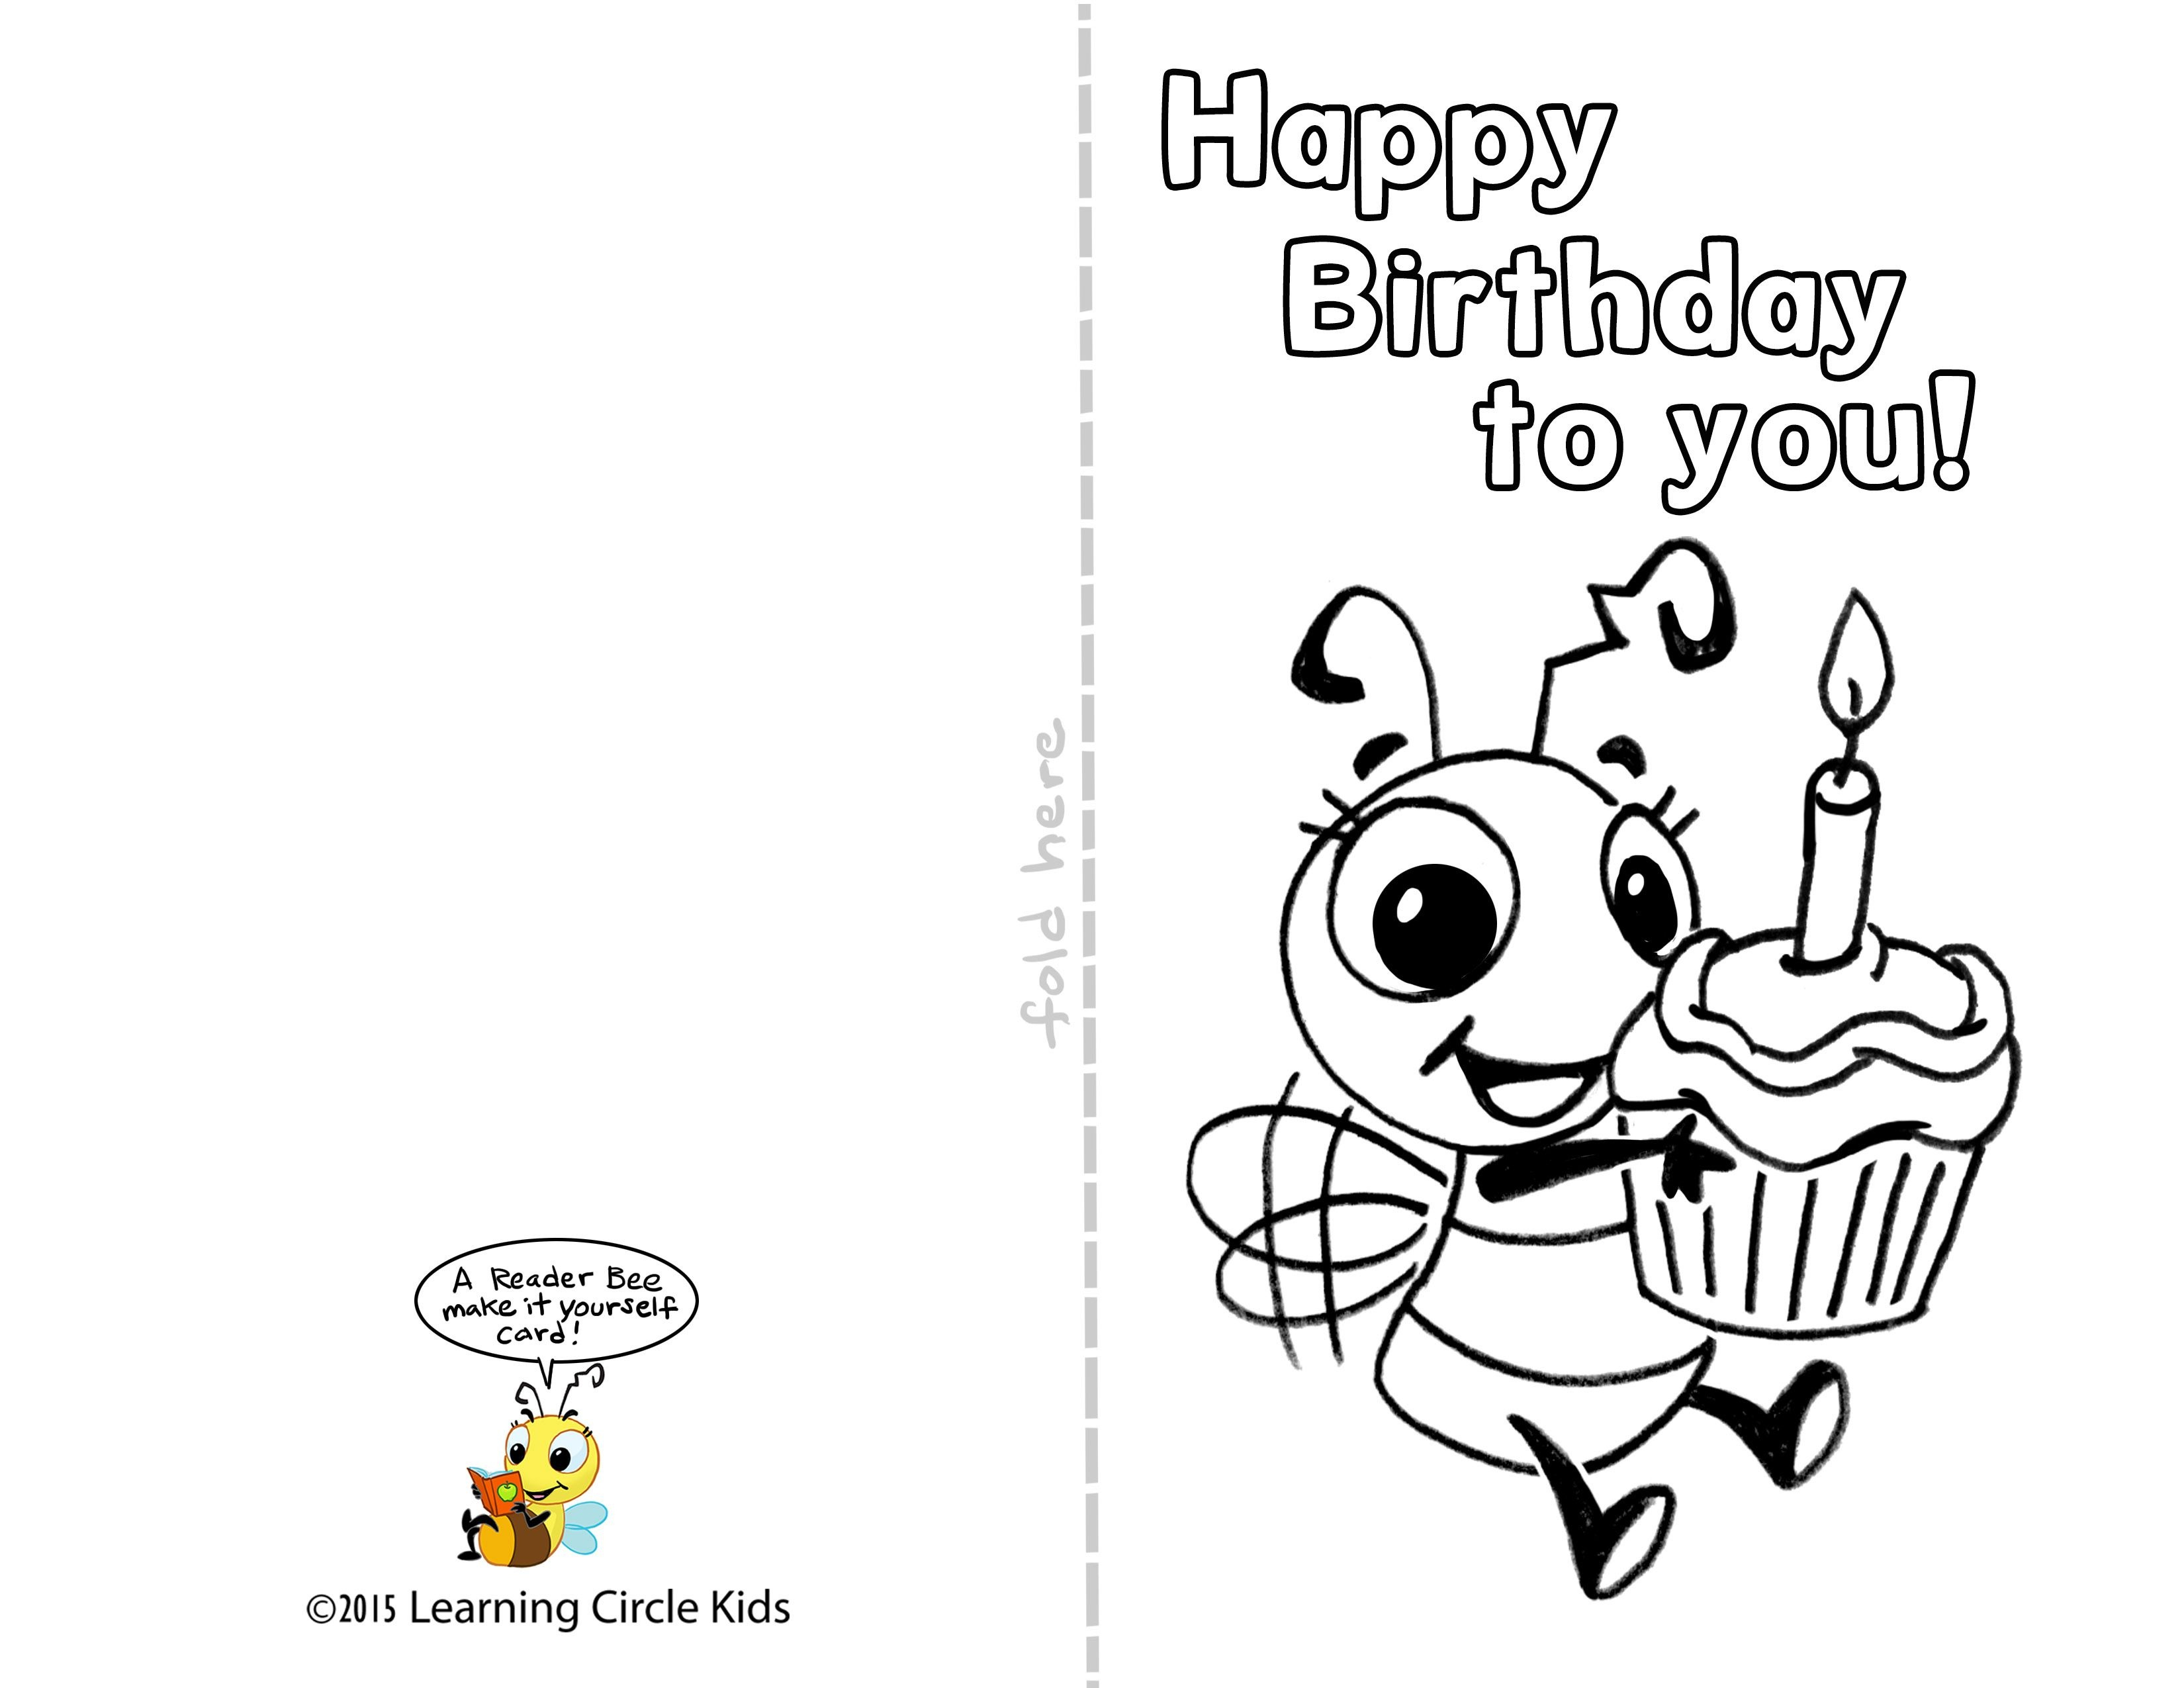 Free Printable Birthday Cards For Kids To Color - Demir.iso - Free Printable Cards To Color